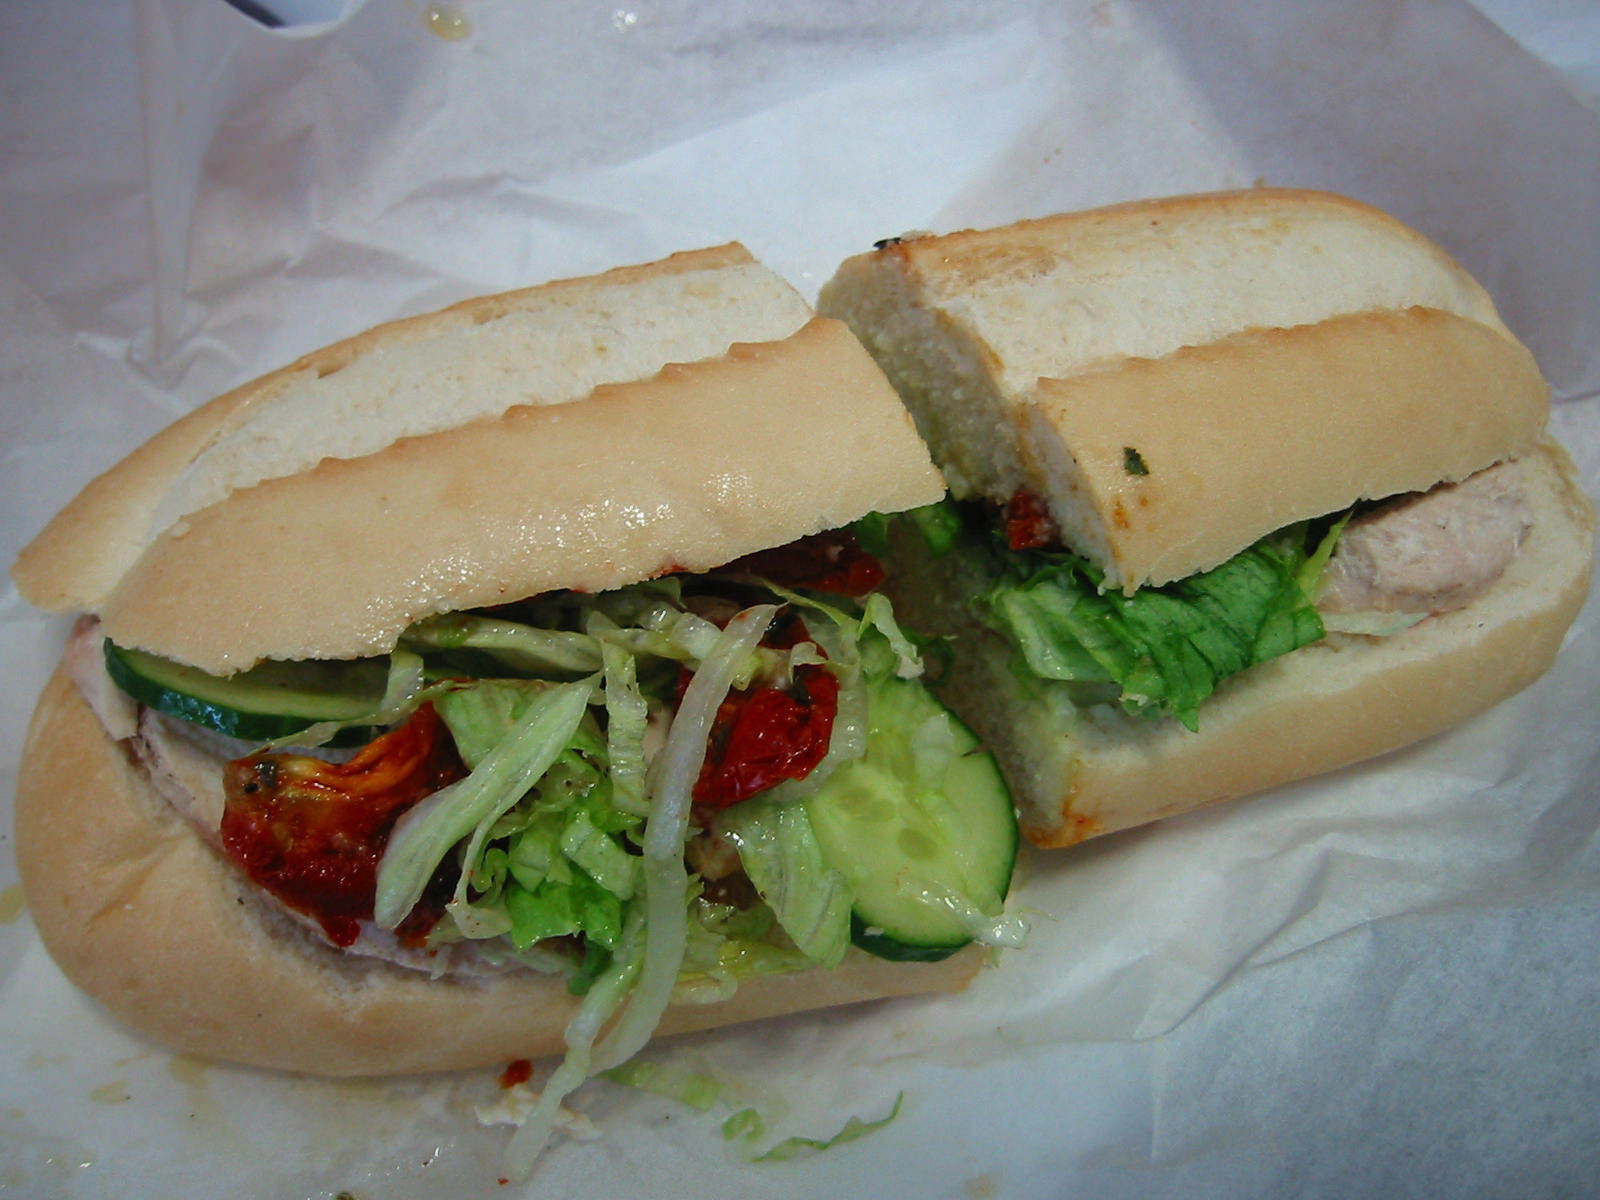 Bread roll with chicken, cucumber, lettuce and sundried tomatoes